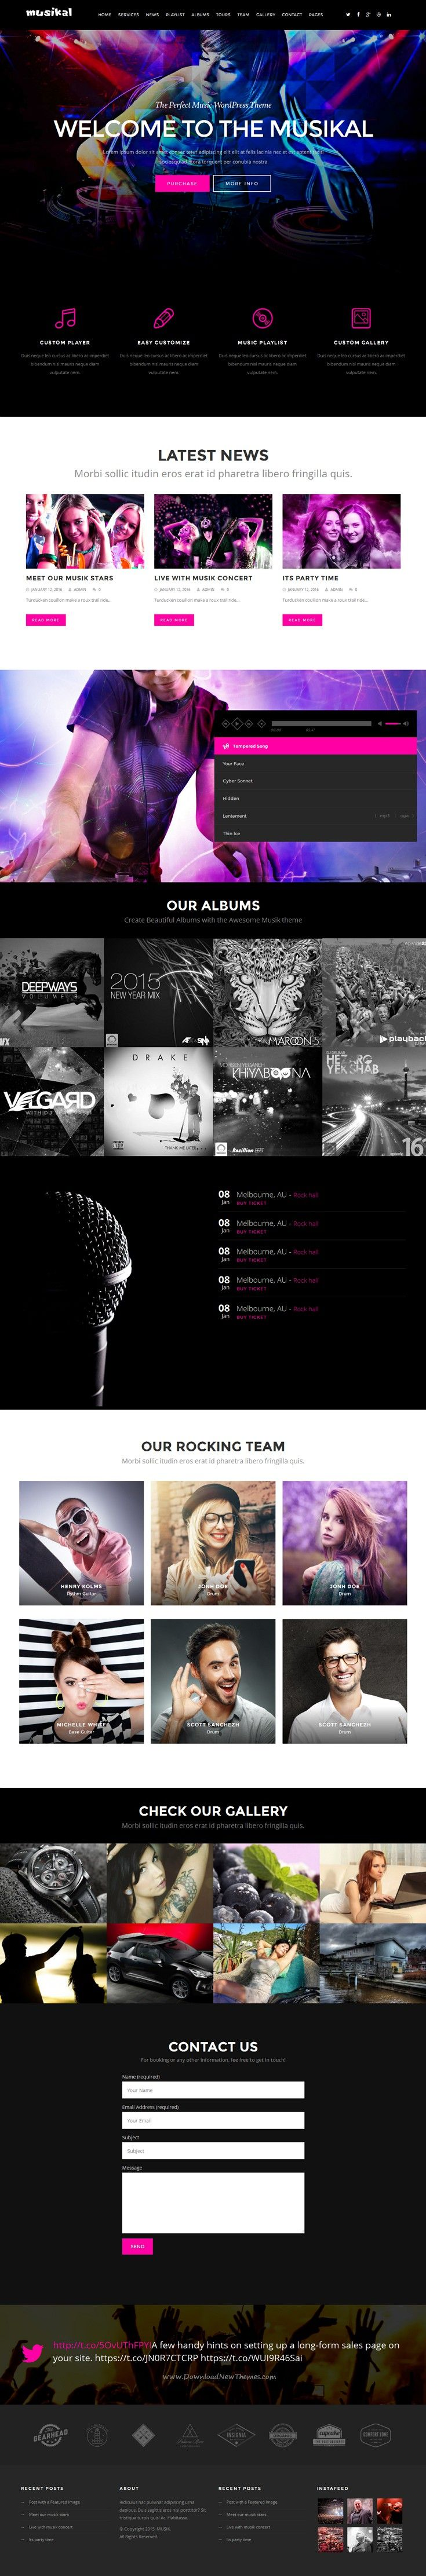 MUSIK is a Stylish, Responsive and Professionally Designed WordPress Theme best suitable for any kinds of #Music & Cinema activity, Bands, #Artist, Singers, Portfolios, App Showcasing and Concert or Festival #website. Download Now!